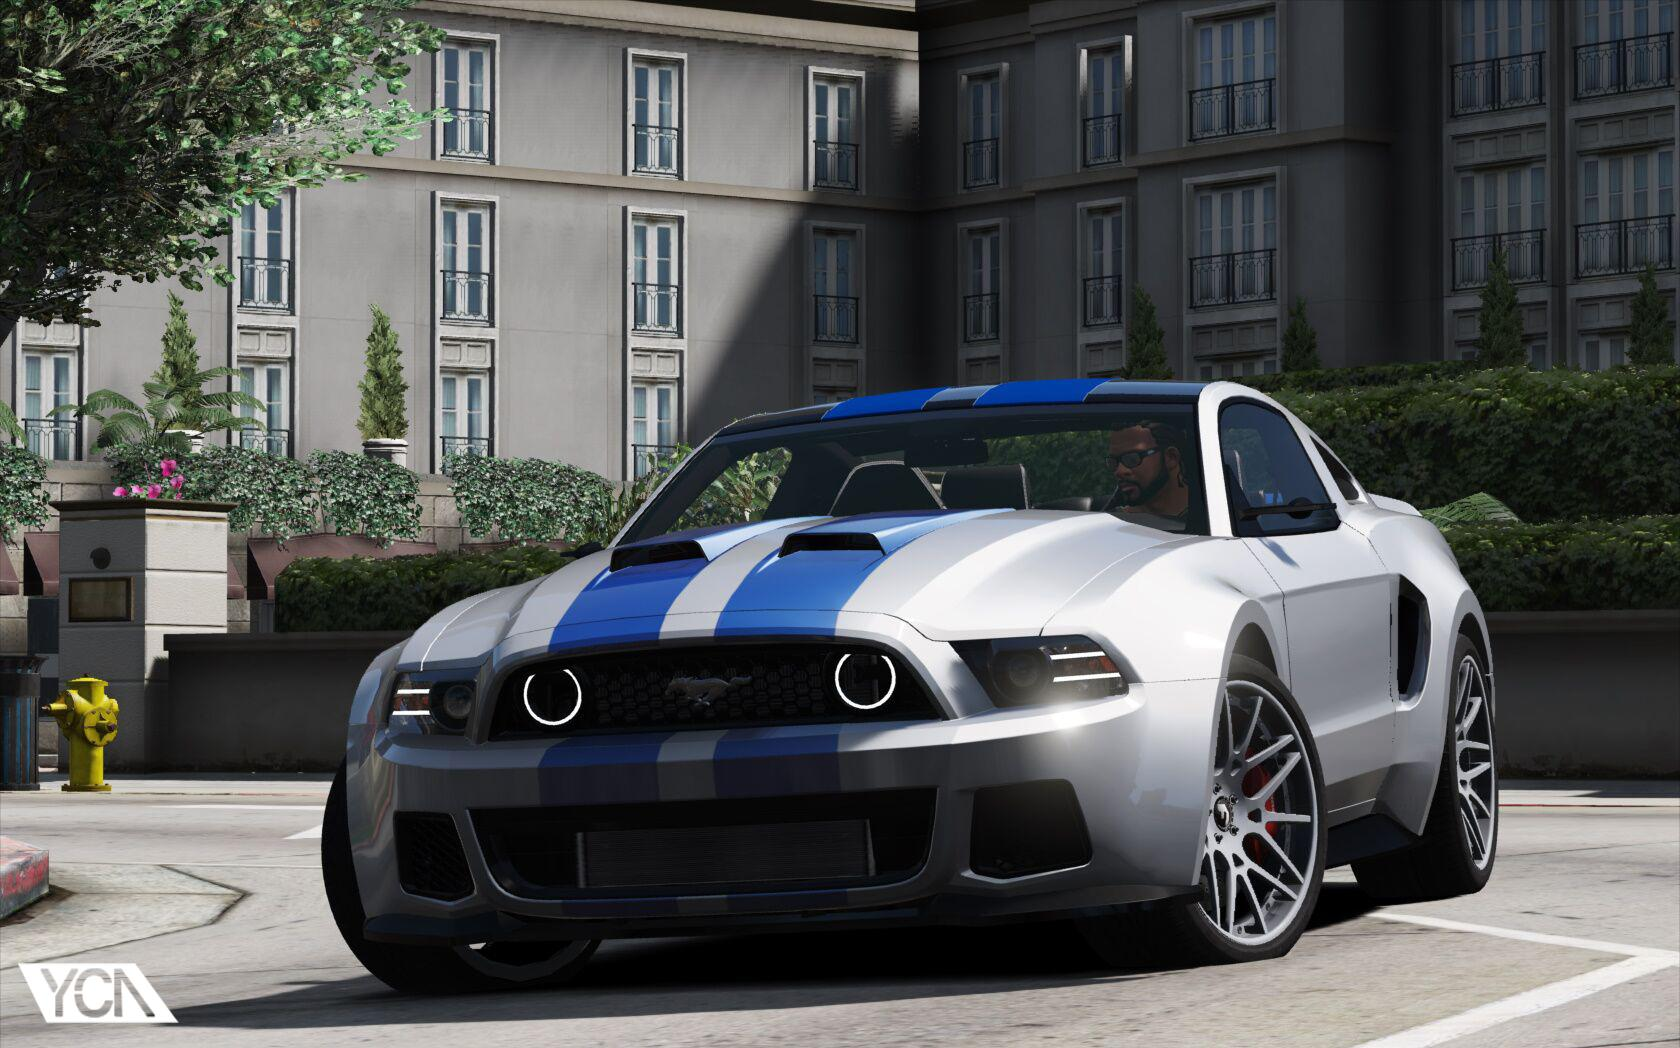 Ford Mustang GT NFS + GT500 2013 [Add-On] - GTA5-Mods.com Mustang